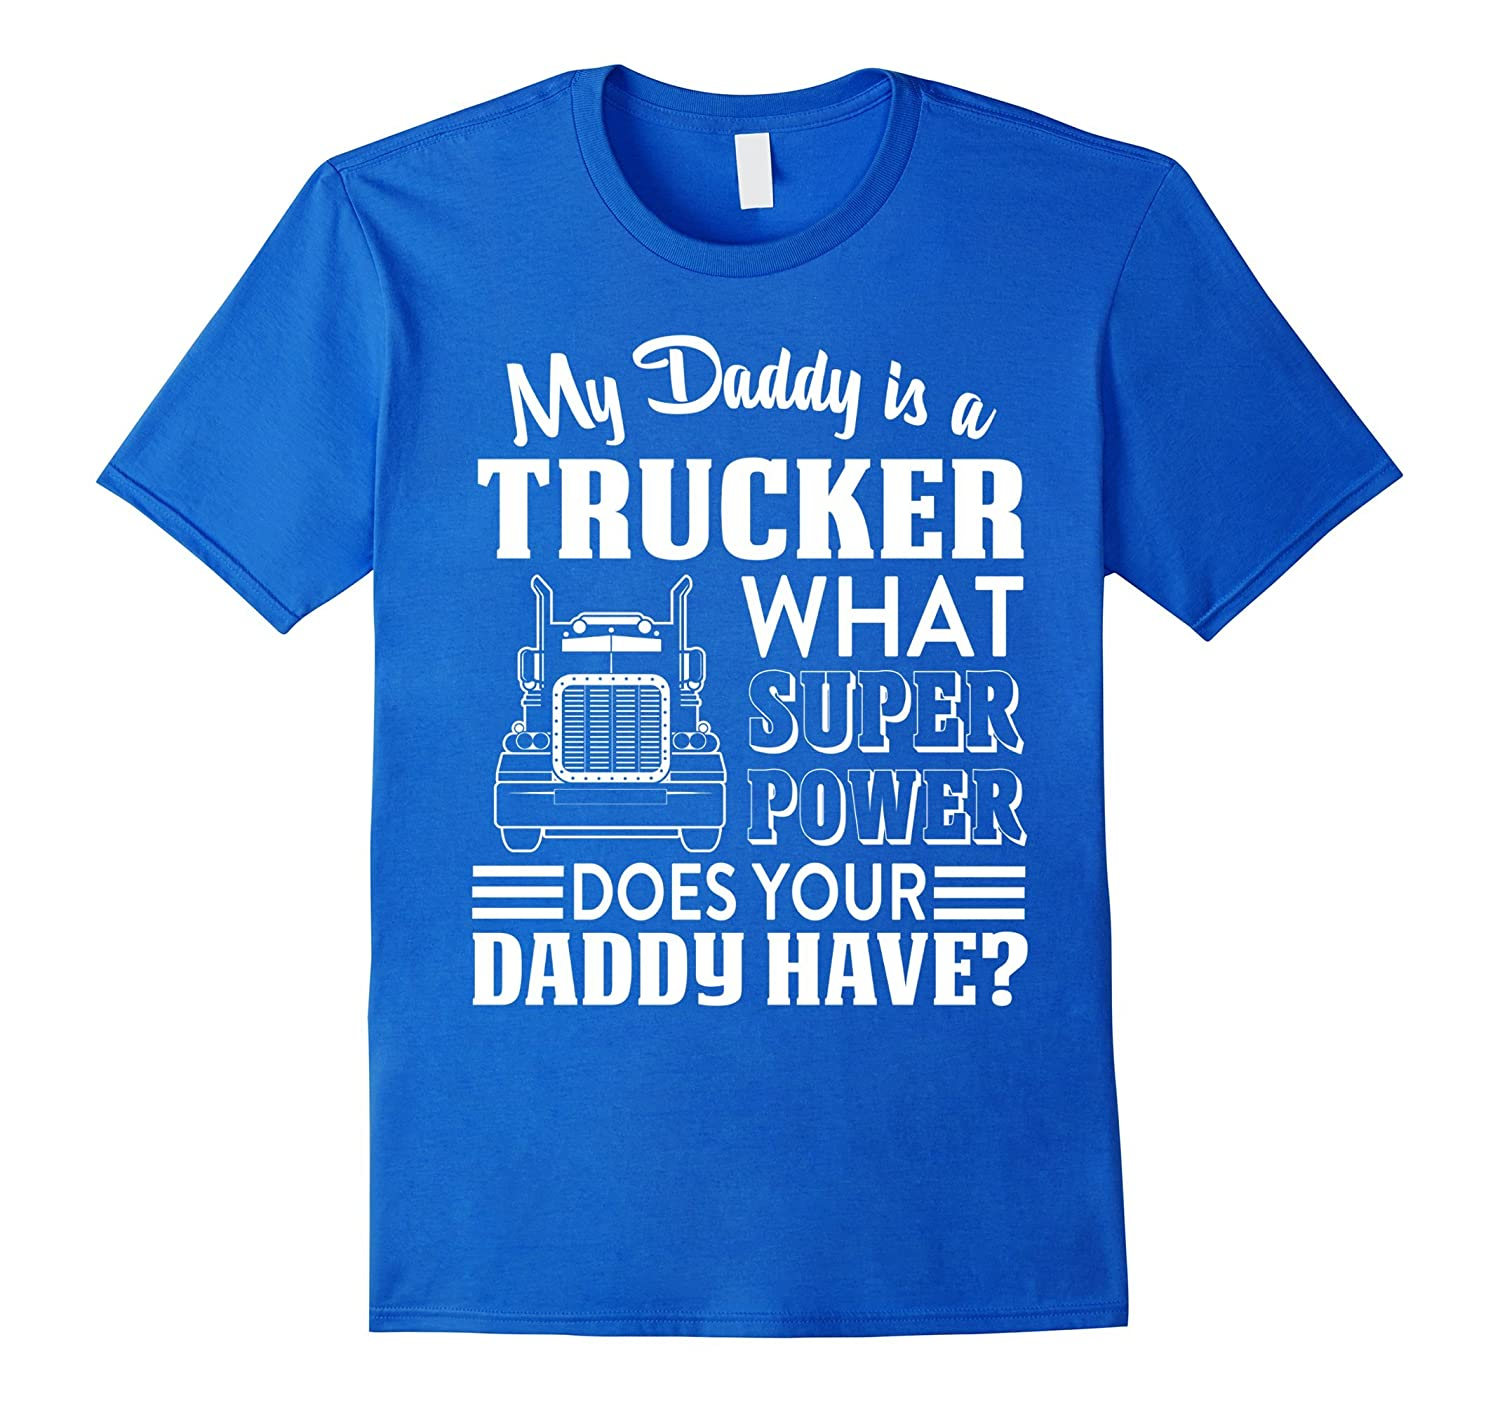 b10bed5b ... My Daddy Is A Trucker T-shirt What Power Does Your Daddy Hav ...